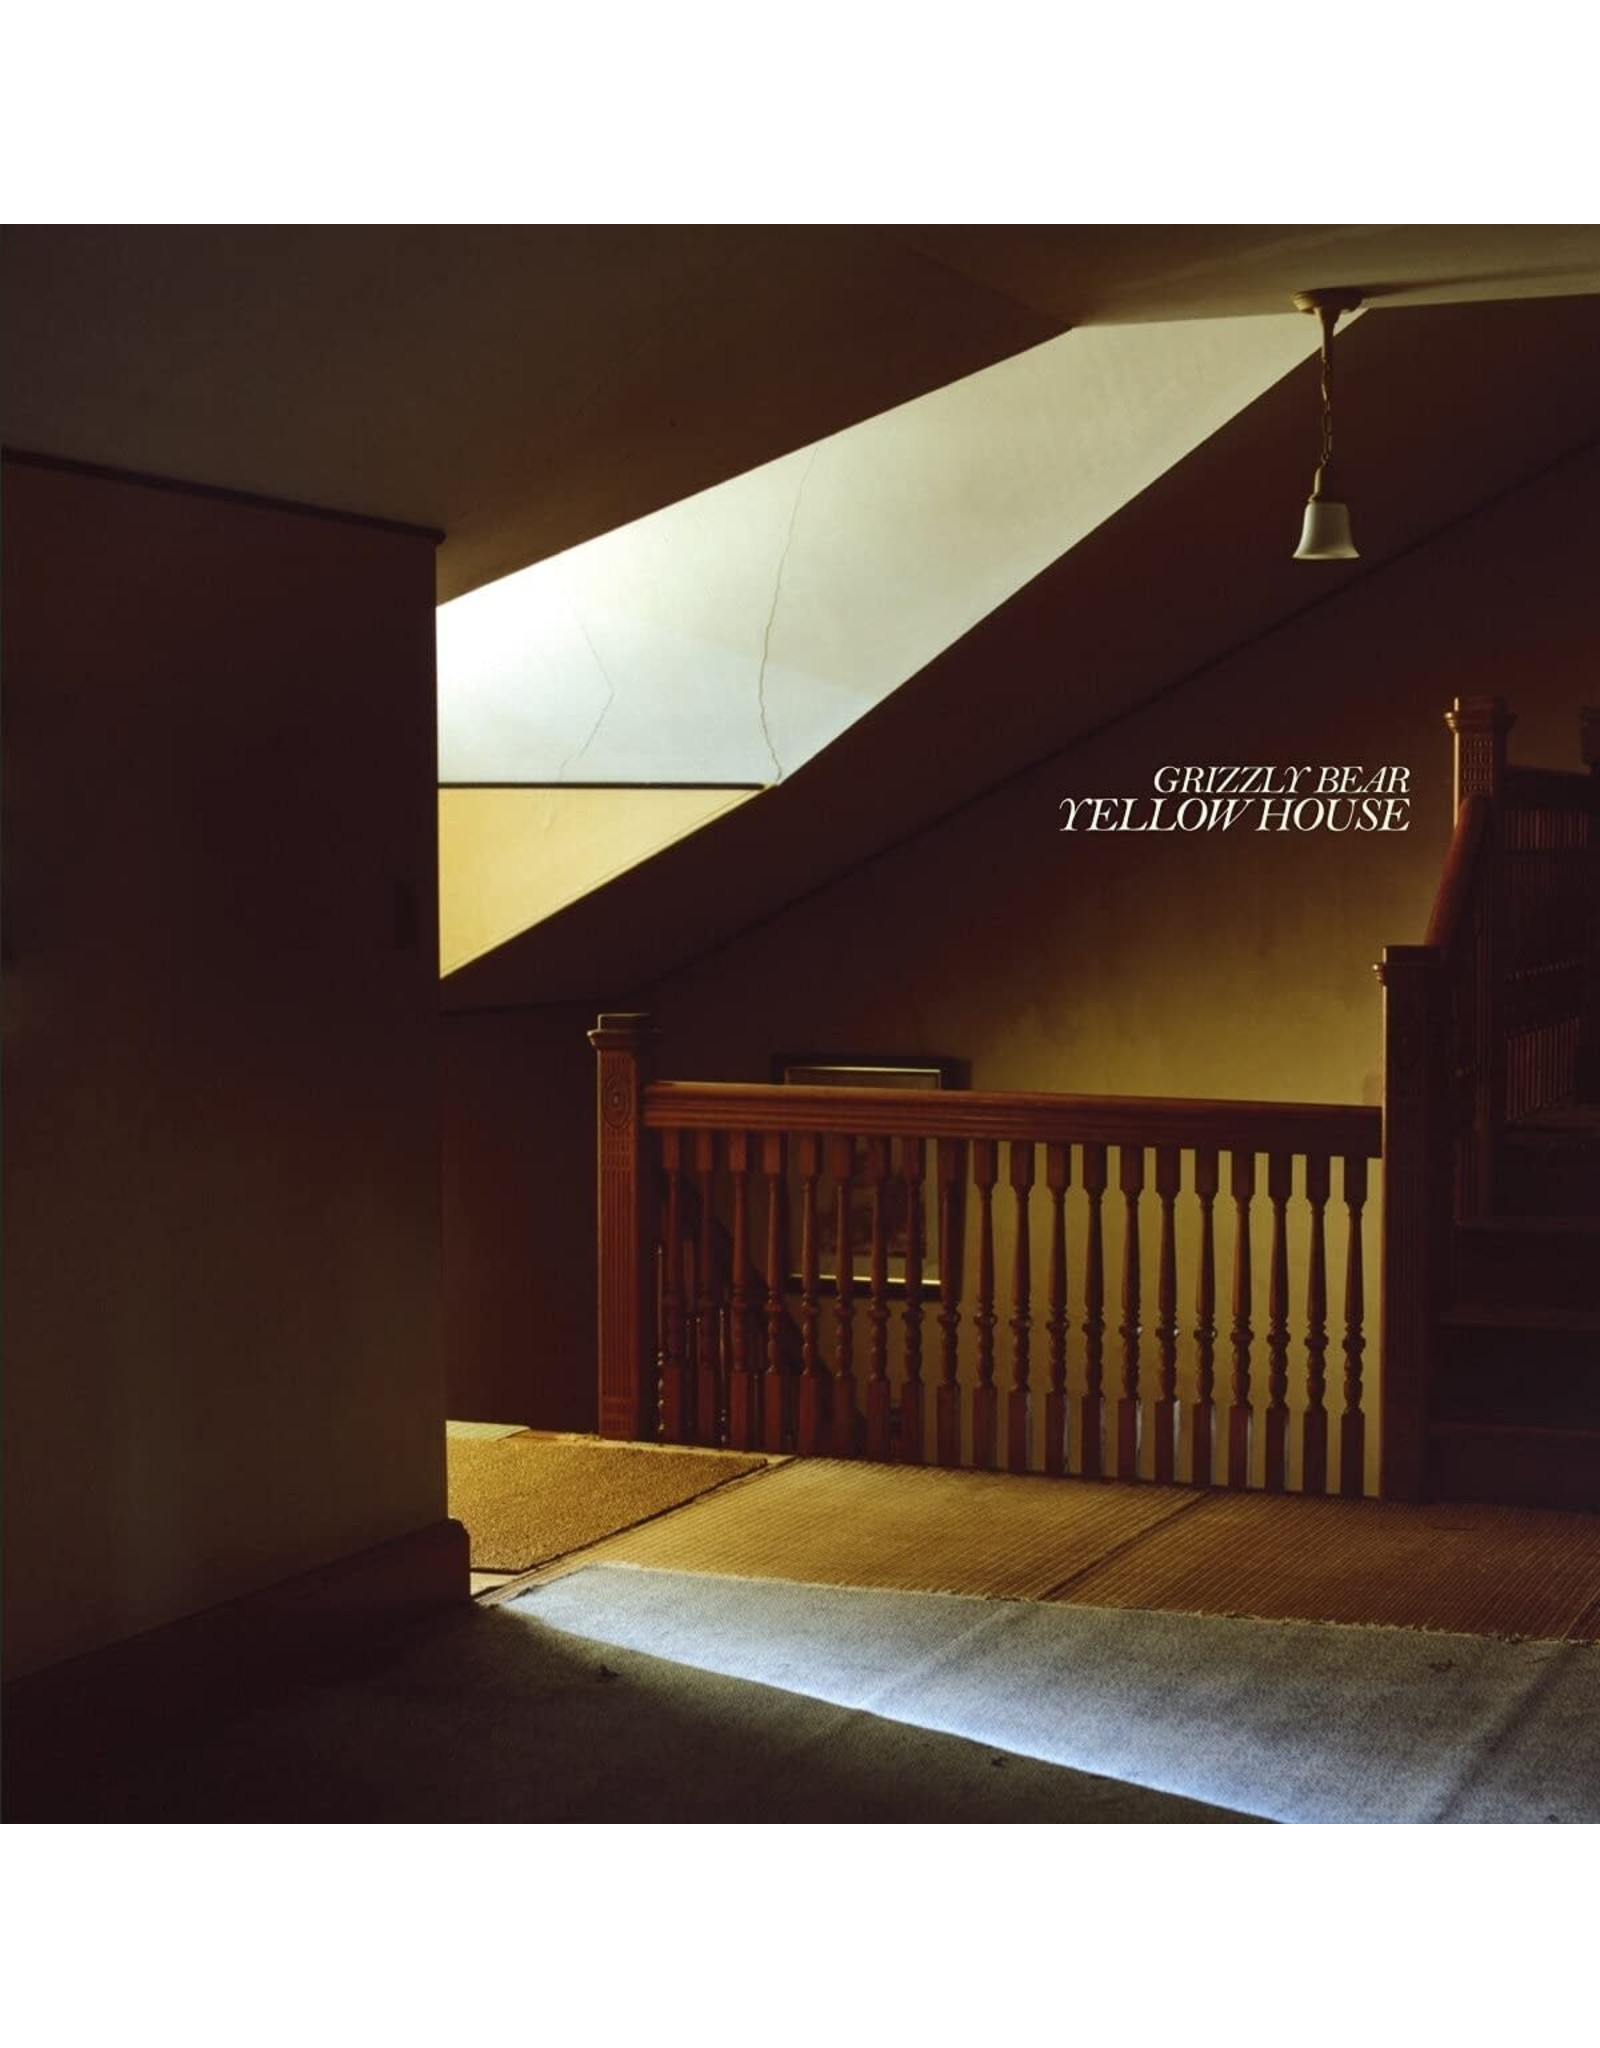 Grizzly Bear - Yellow House (Exclusive Clear Vinyl)